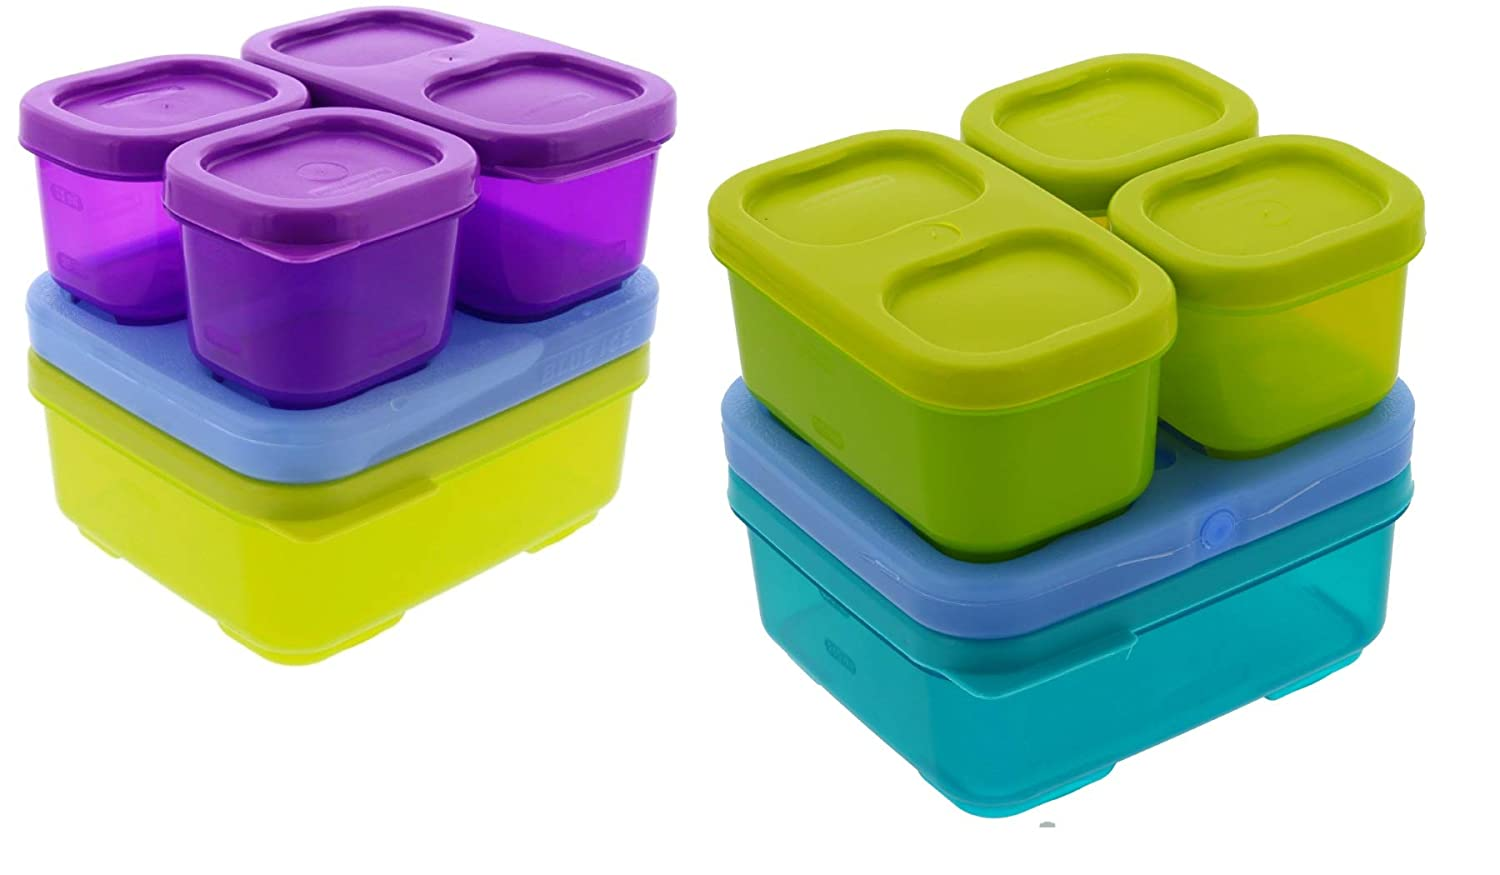 Rubbermaid LunchBlox Sandwich Kit, 2pk - BPA-Free, Freezer Safe, Microwave Safe Plastic Container with Blue Ice - Colors May Vary